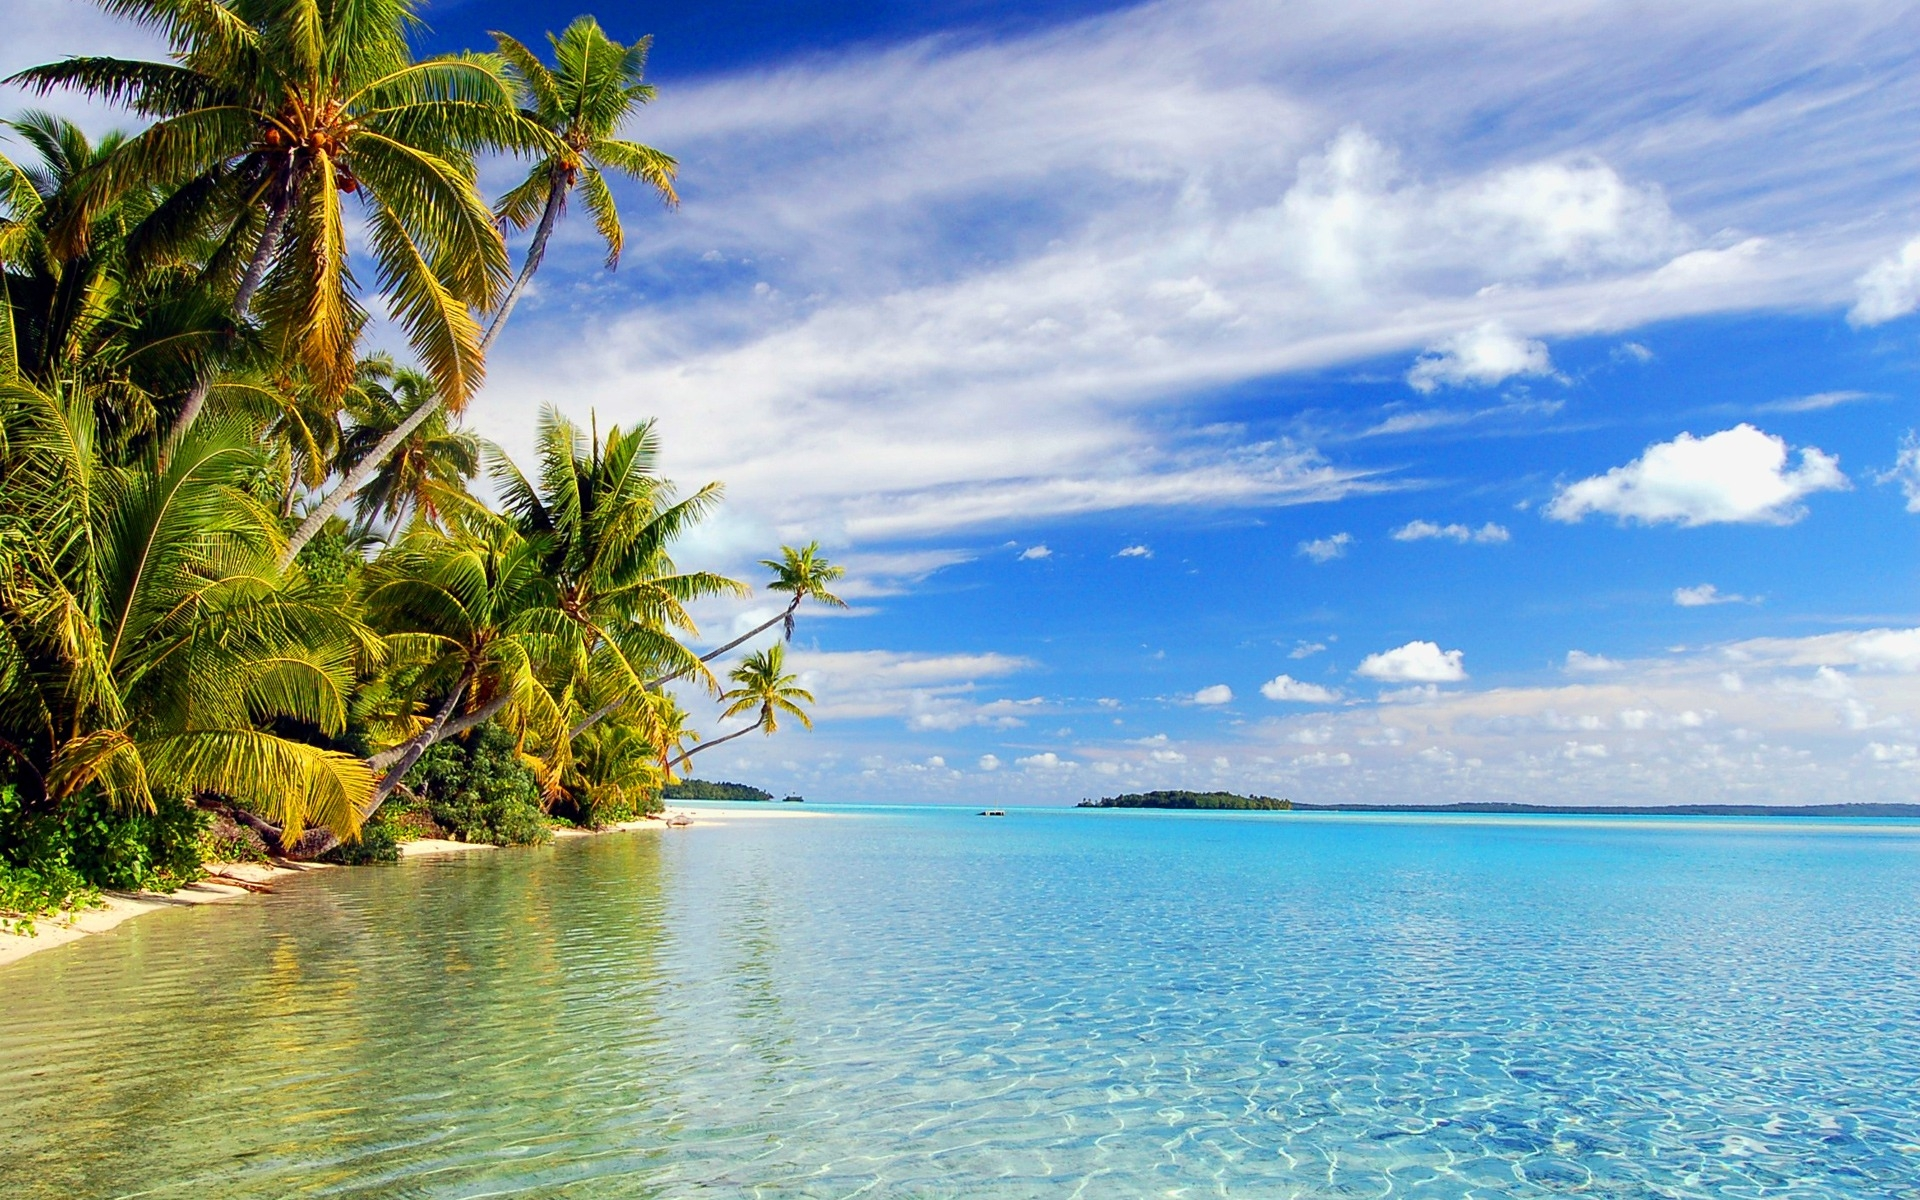 Free download hd tropical island beach paradise wallpapers ...